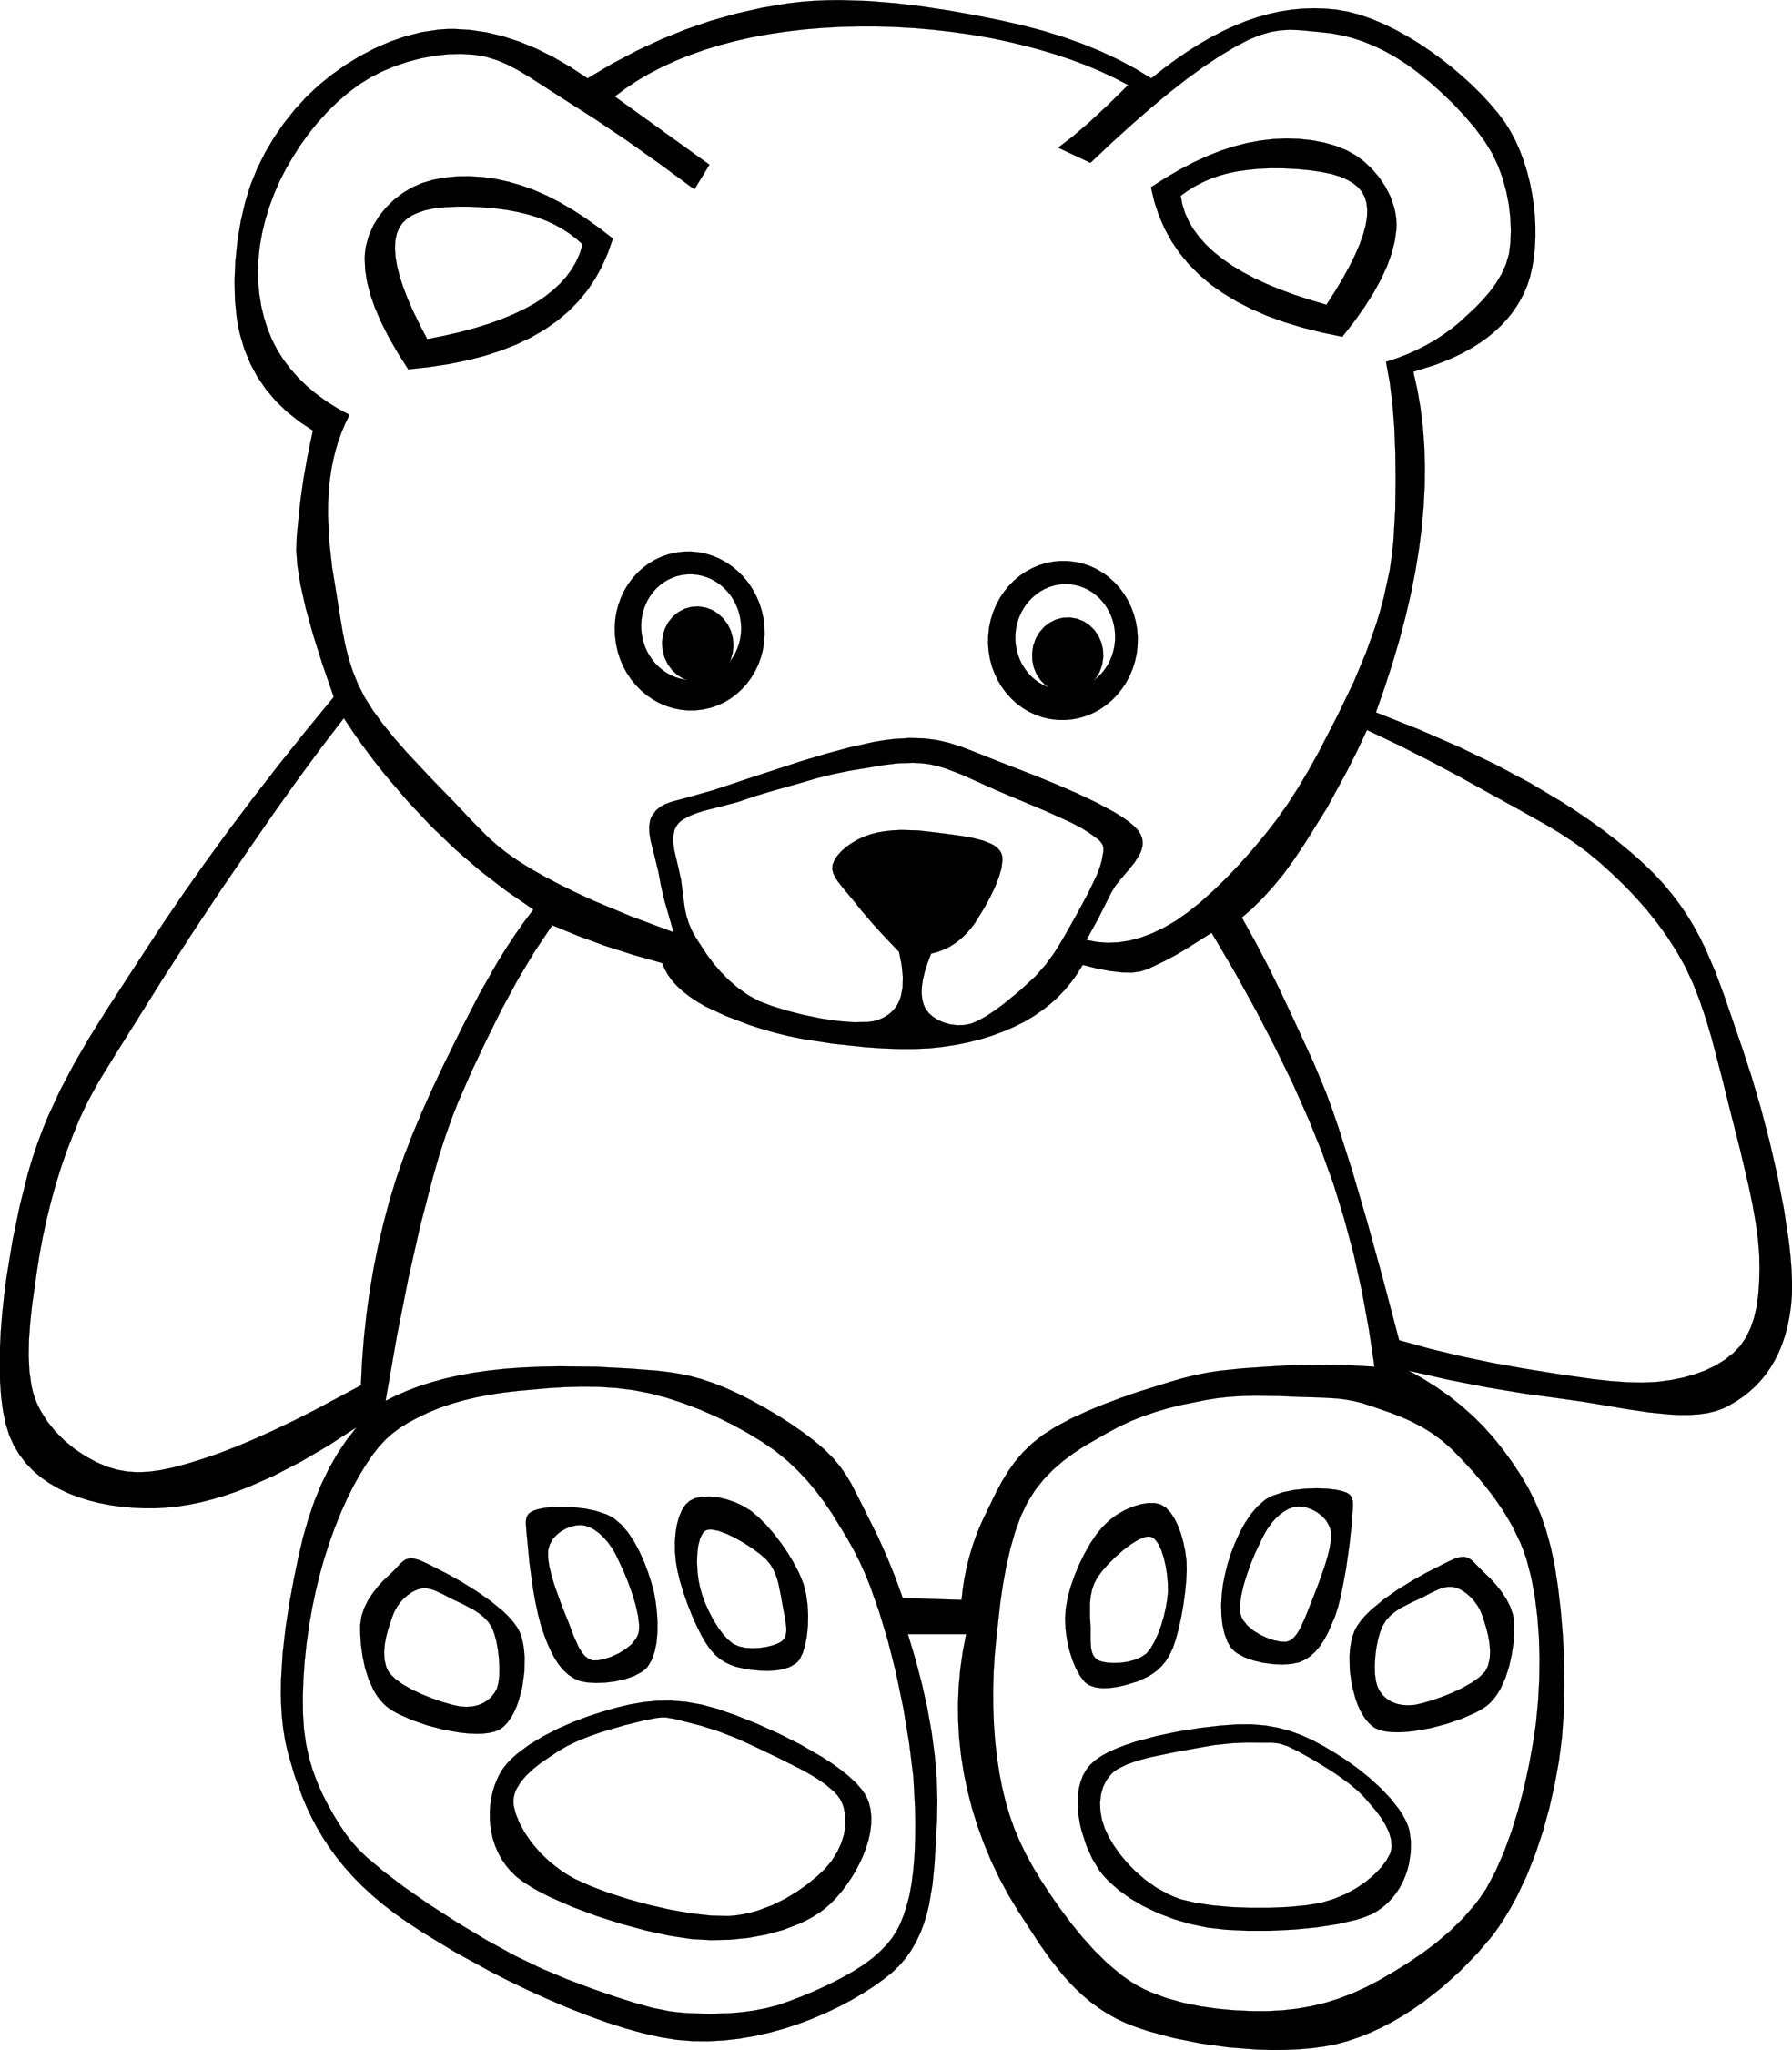 teddy bear clipart black and white clipart panda free clipart images rh clipartpanda com panda bear clipart black and white bear clipart black and white free